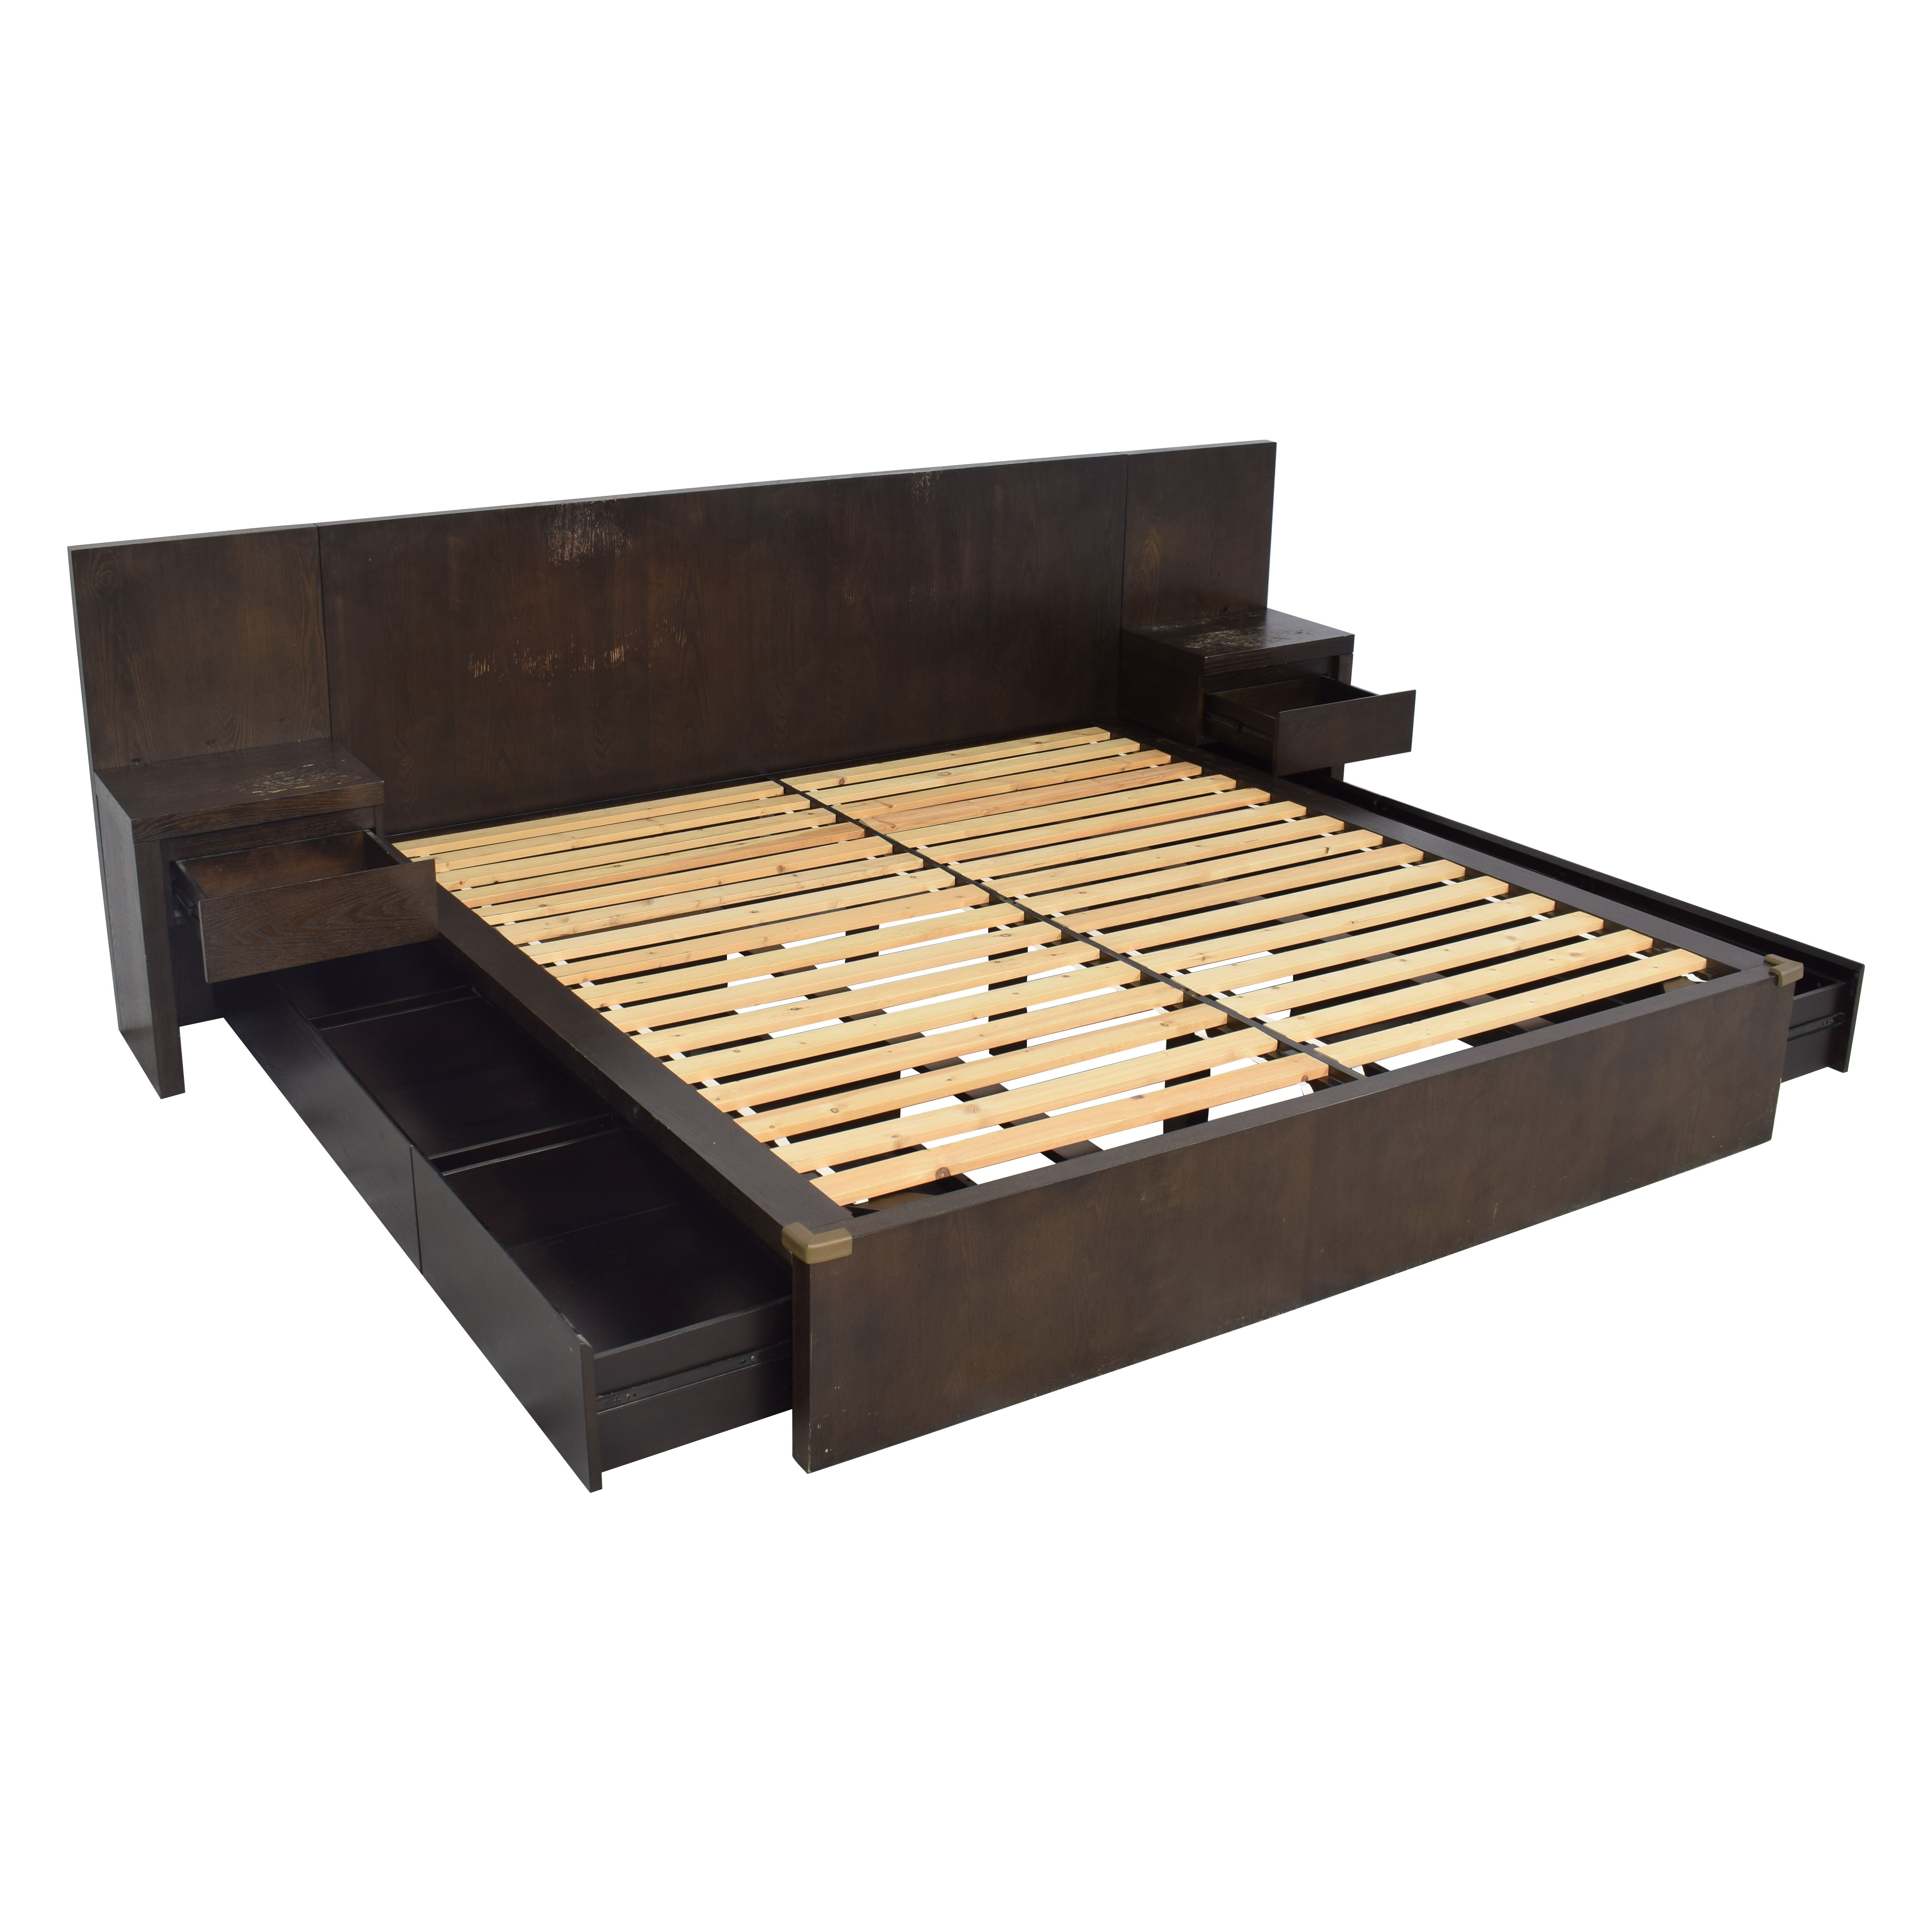 West Elm King Storage Bed with Nightstands sale